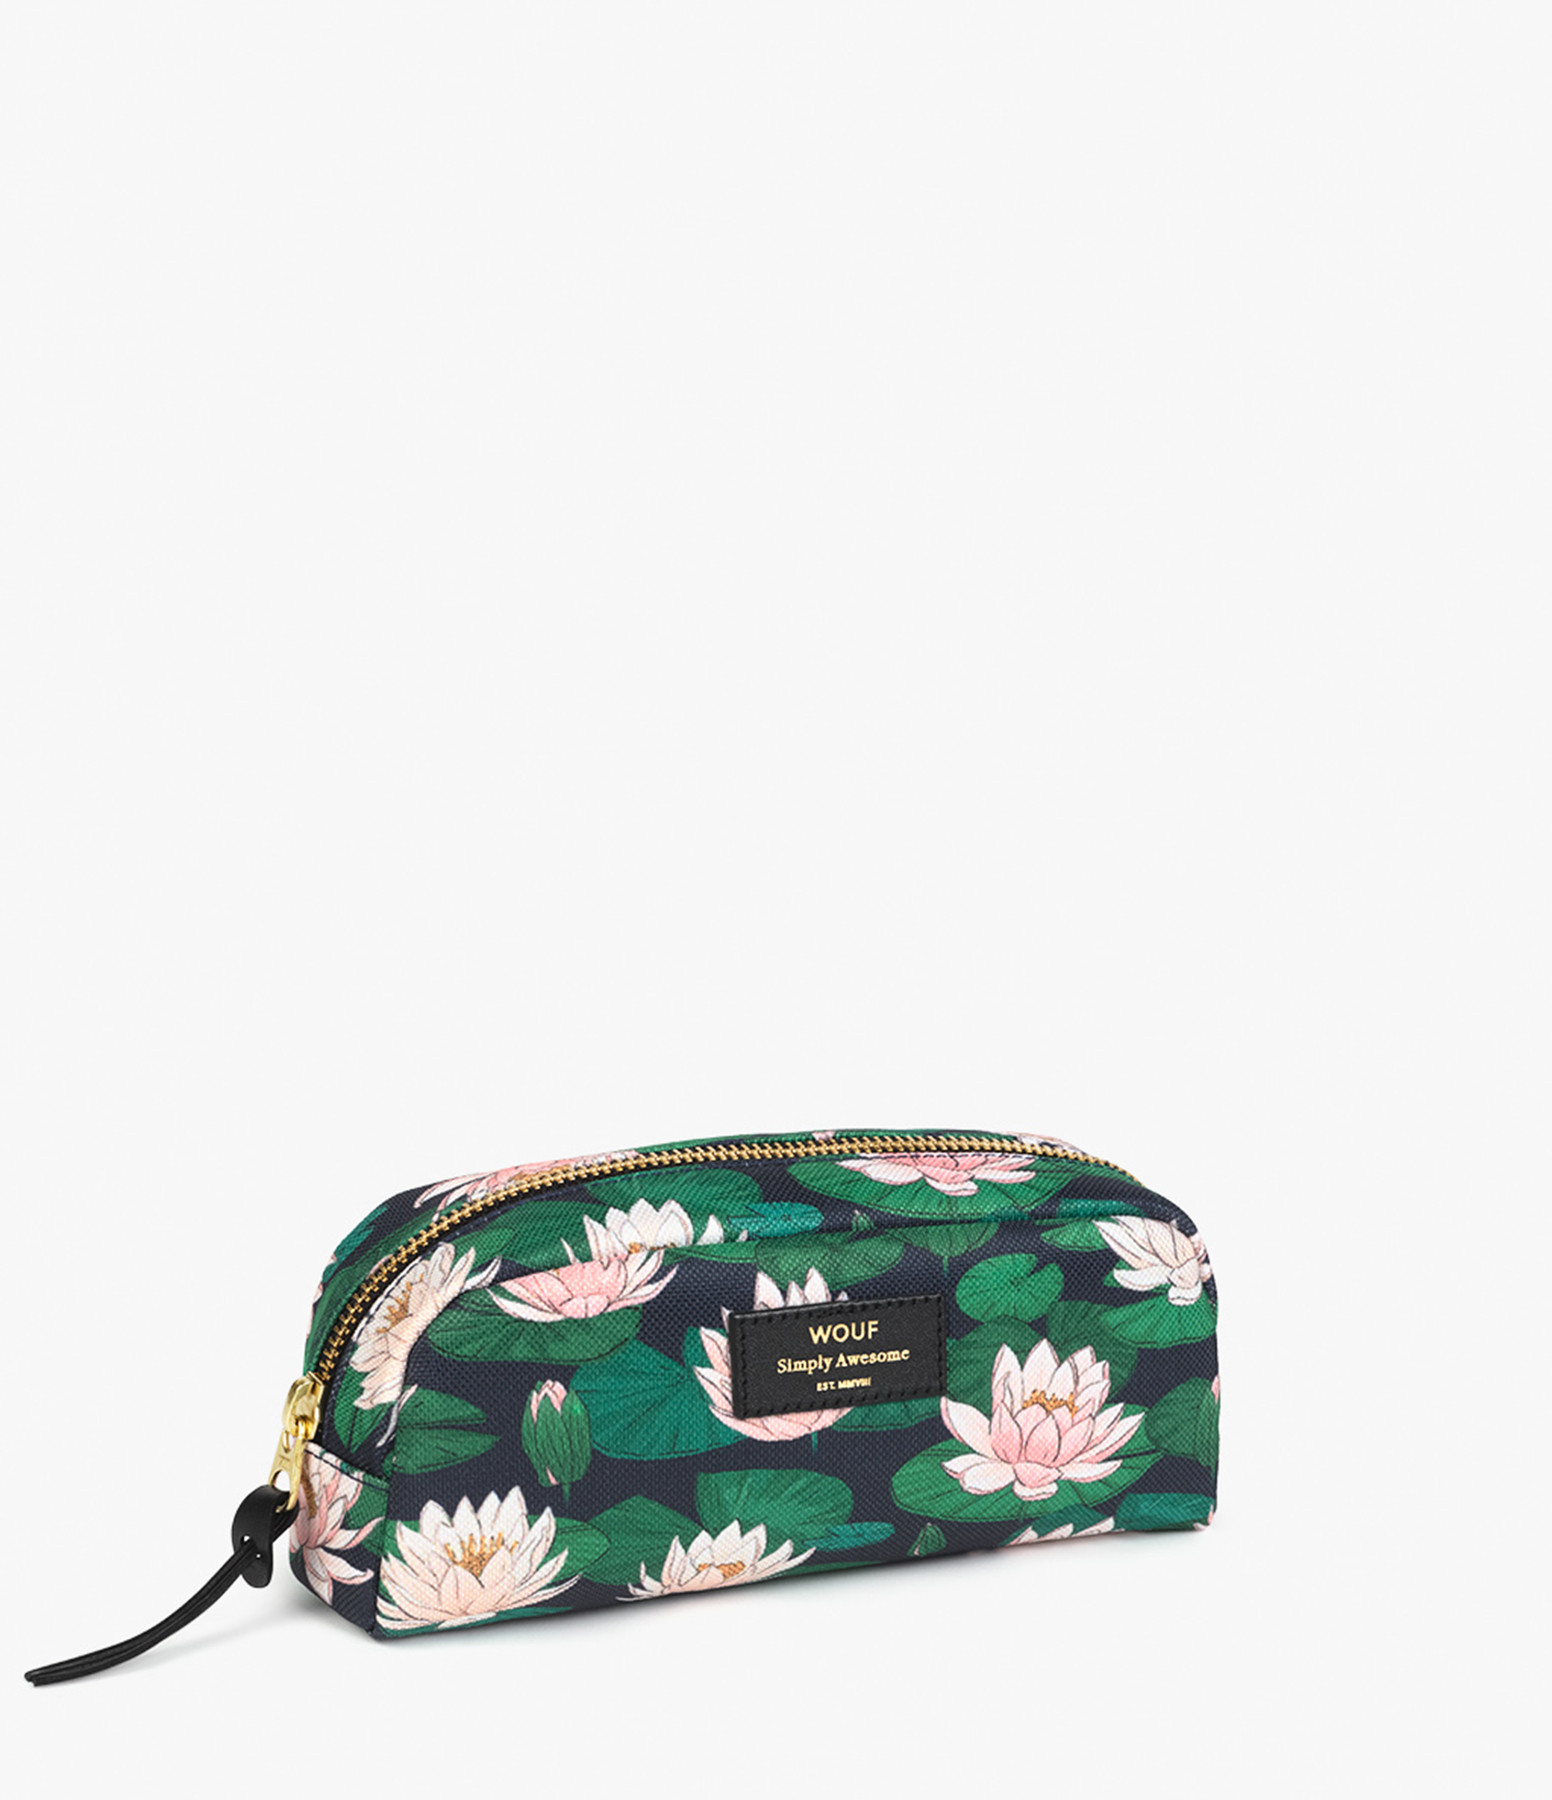 WOUF - Trousse Small Beauty Nénuphares